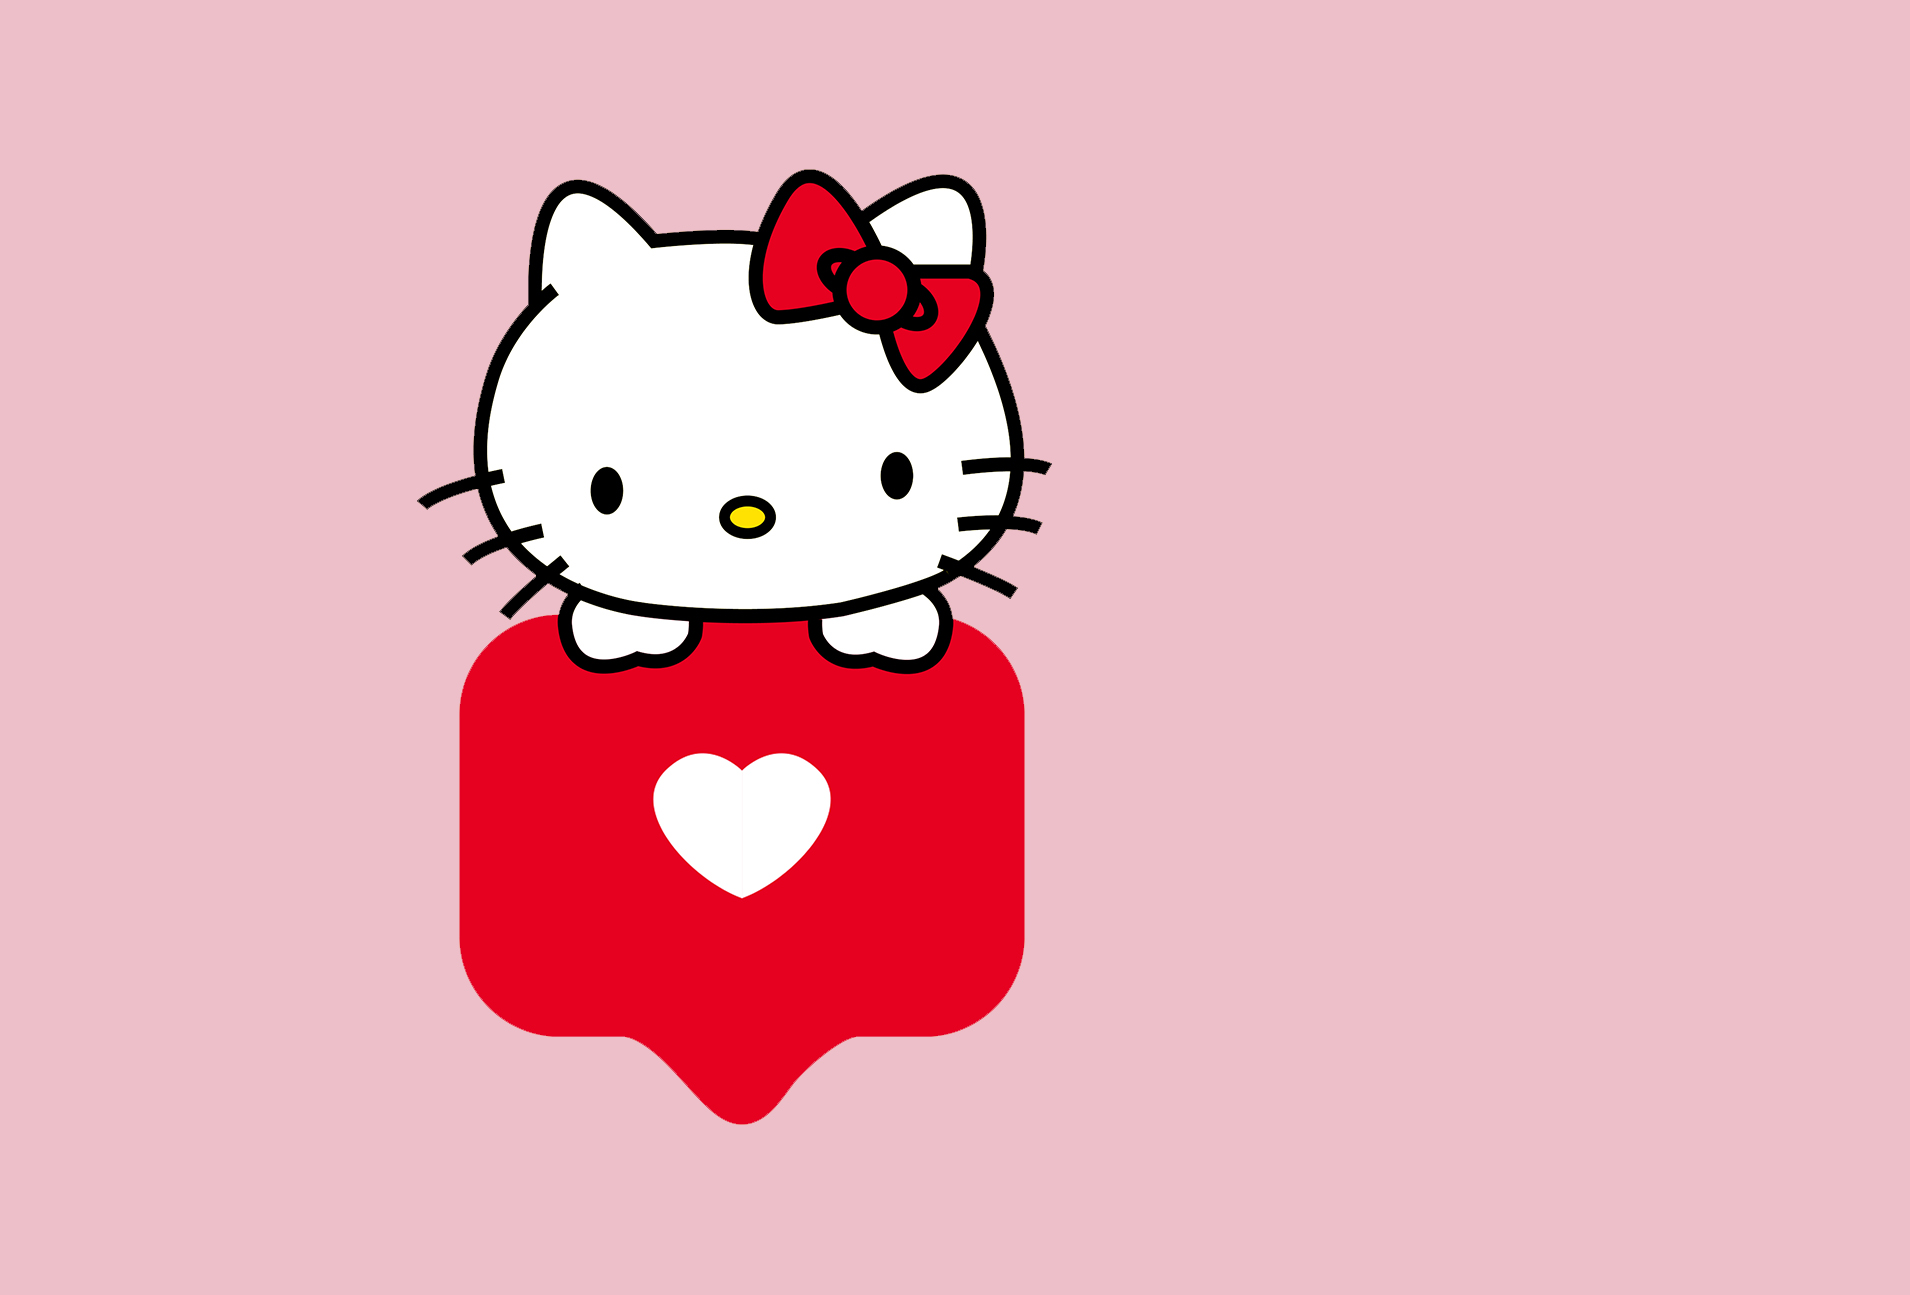 Hello Kitty x Linda Lê - A self initiated project for my friend Linda Lê who competed in the World Kendo Championship 2018, representing Great Britain. I have attended many classes with her outside of Kendo, from Aerial Hoop to the standard gym session - almost as a good luck charm I set out to create a set of vinyl cut stickers of her favourite character Hello Kitty, clothes and embodied with her (Linda's) characteristics. These are not intended for mass distribution, but for personal use.